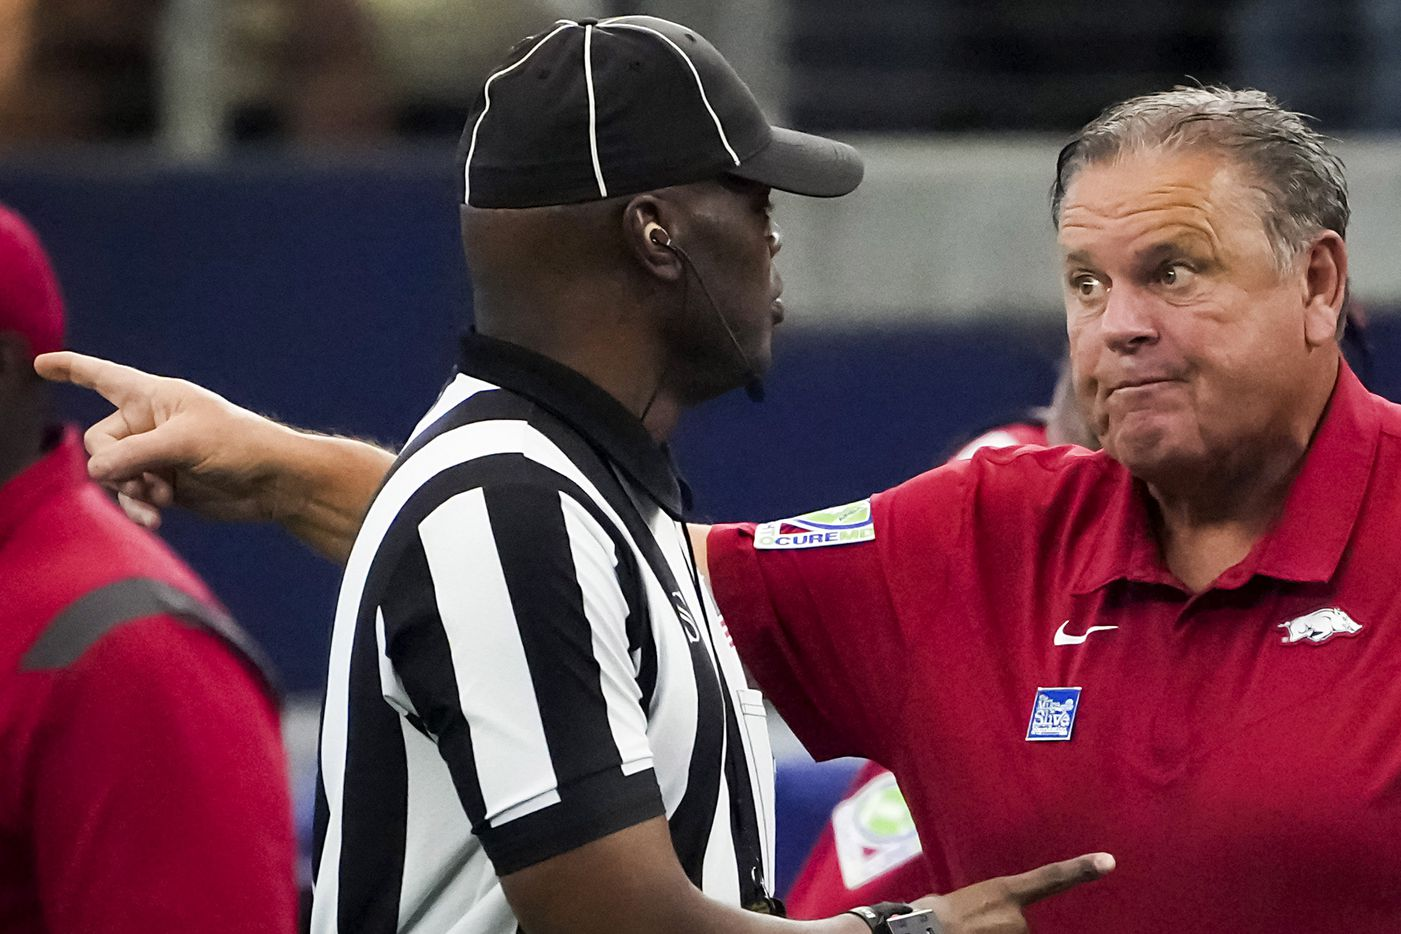 Arkansas head coach Sam Pittman argues for a call during the first half of an NCAA football game against Texas A&M at AT&T Stadium on Saturday, Sept. 25, 2021, in Arlington.